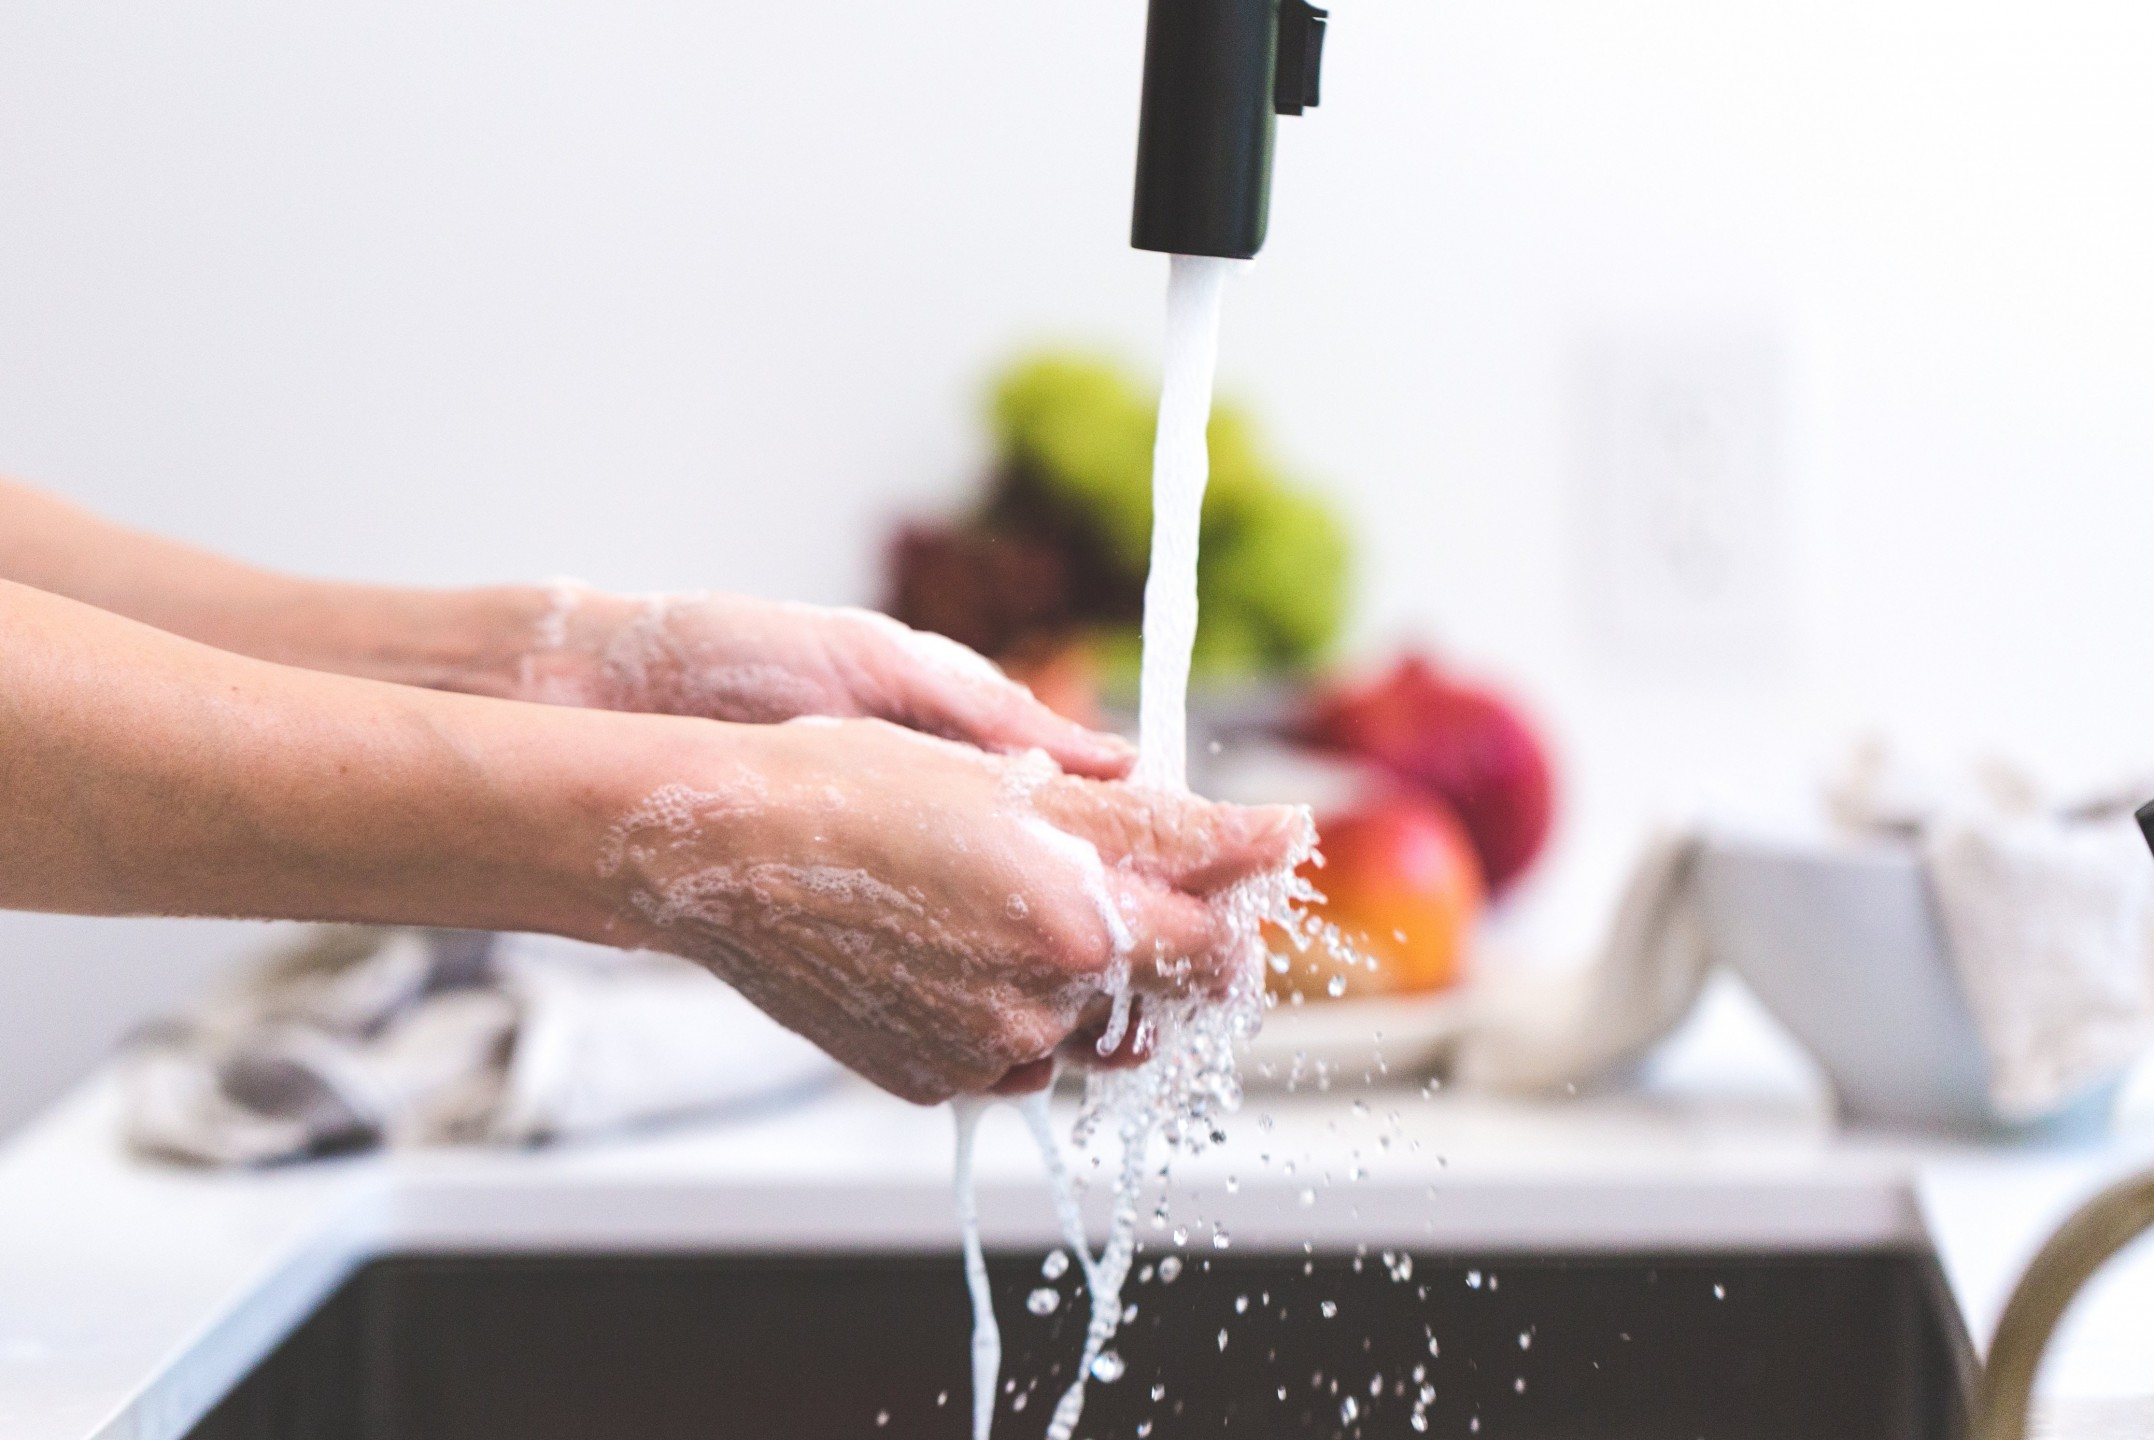 squarerooms-cooking-hands-handwashing-health-sink-kitchen-clean-water